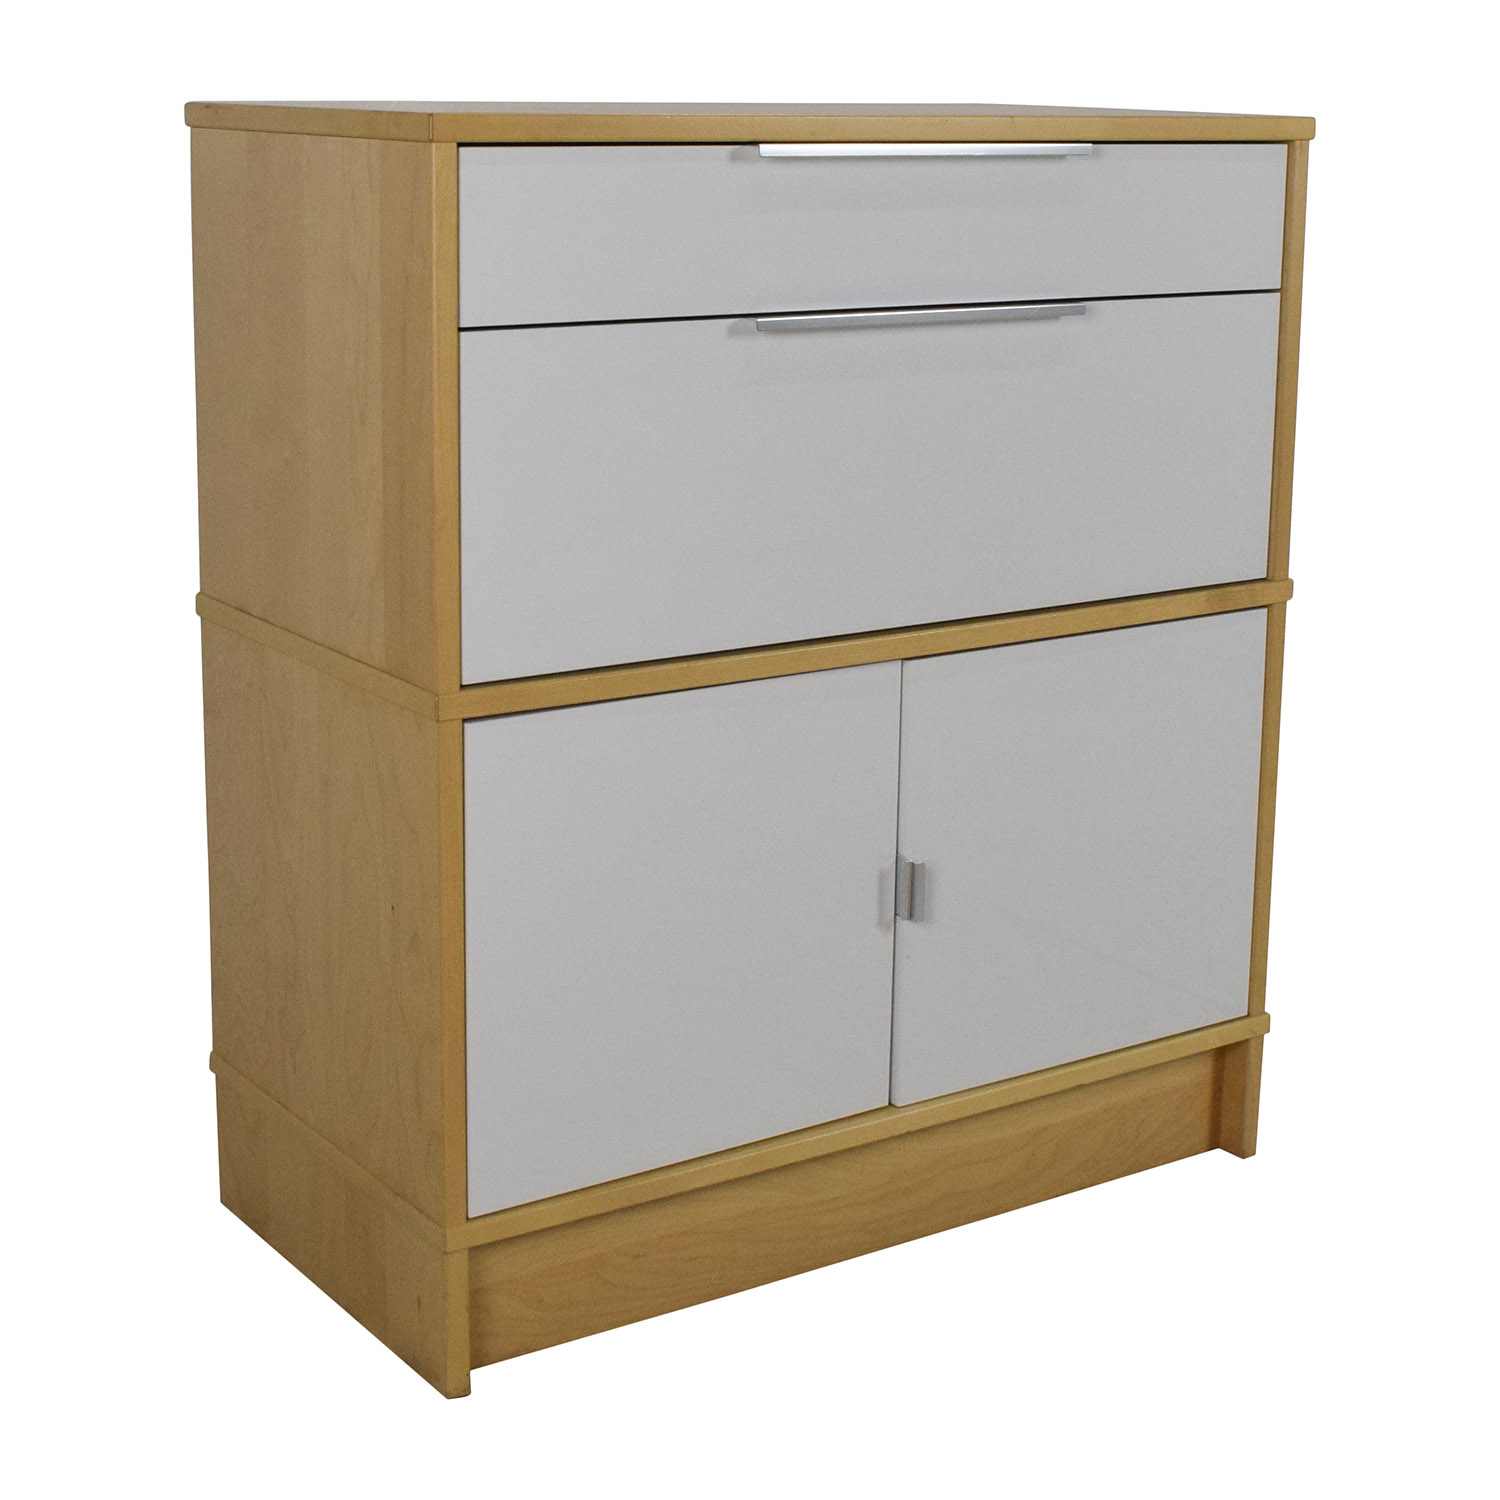 Ikea Storage Furniture Bookcases Cabinets Sideboards 72